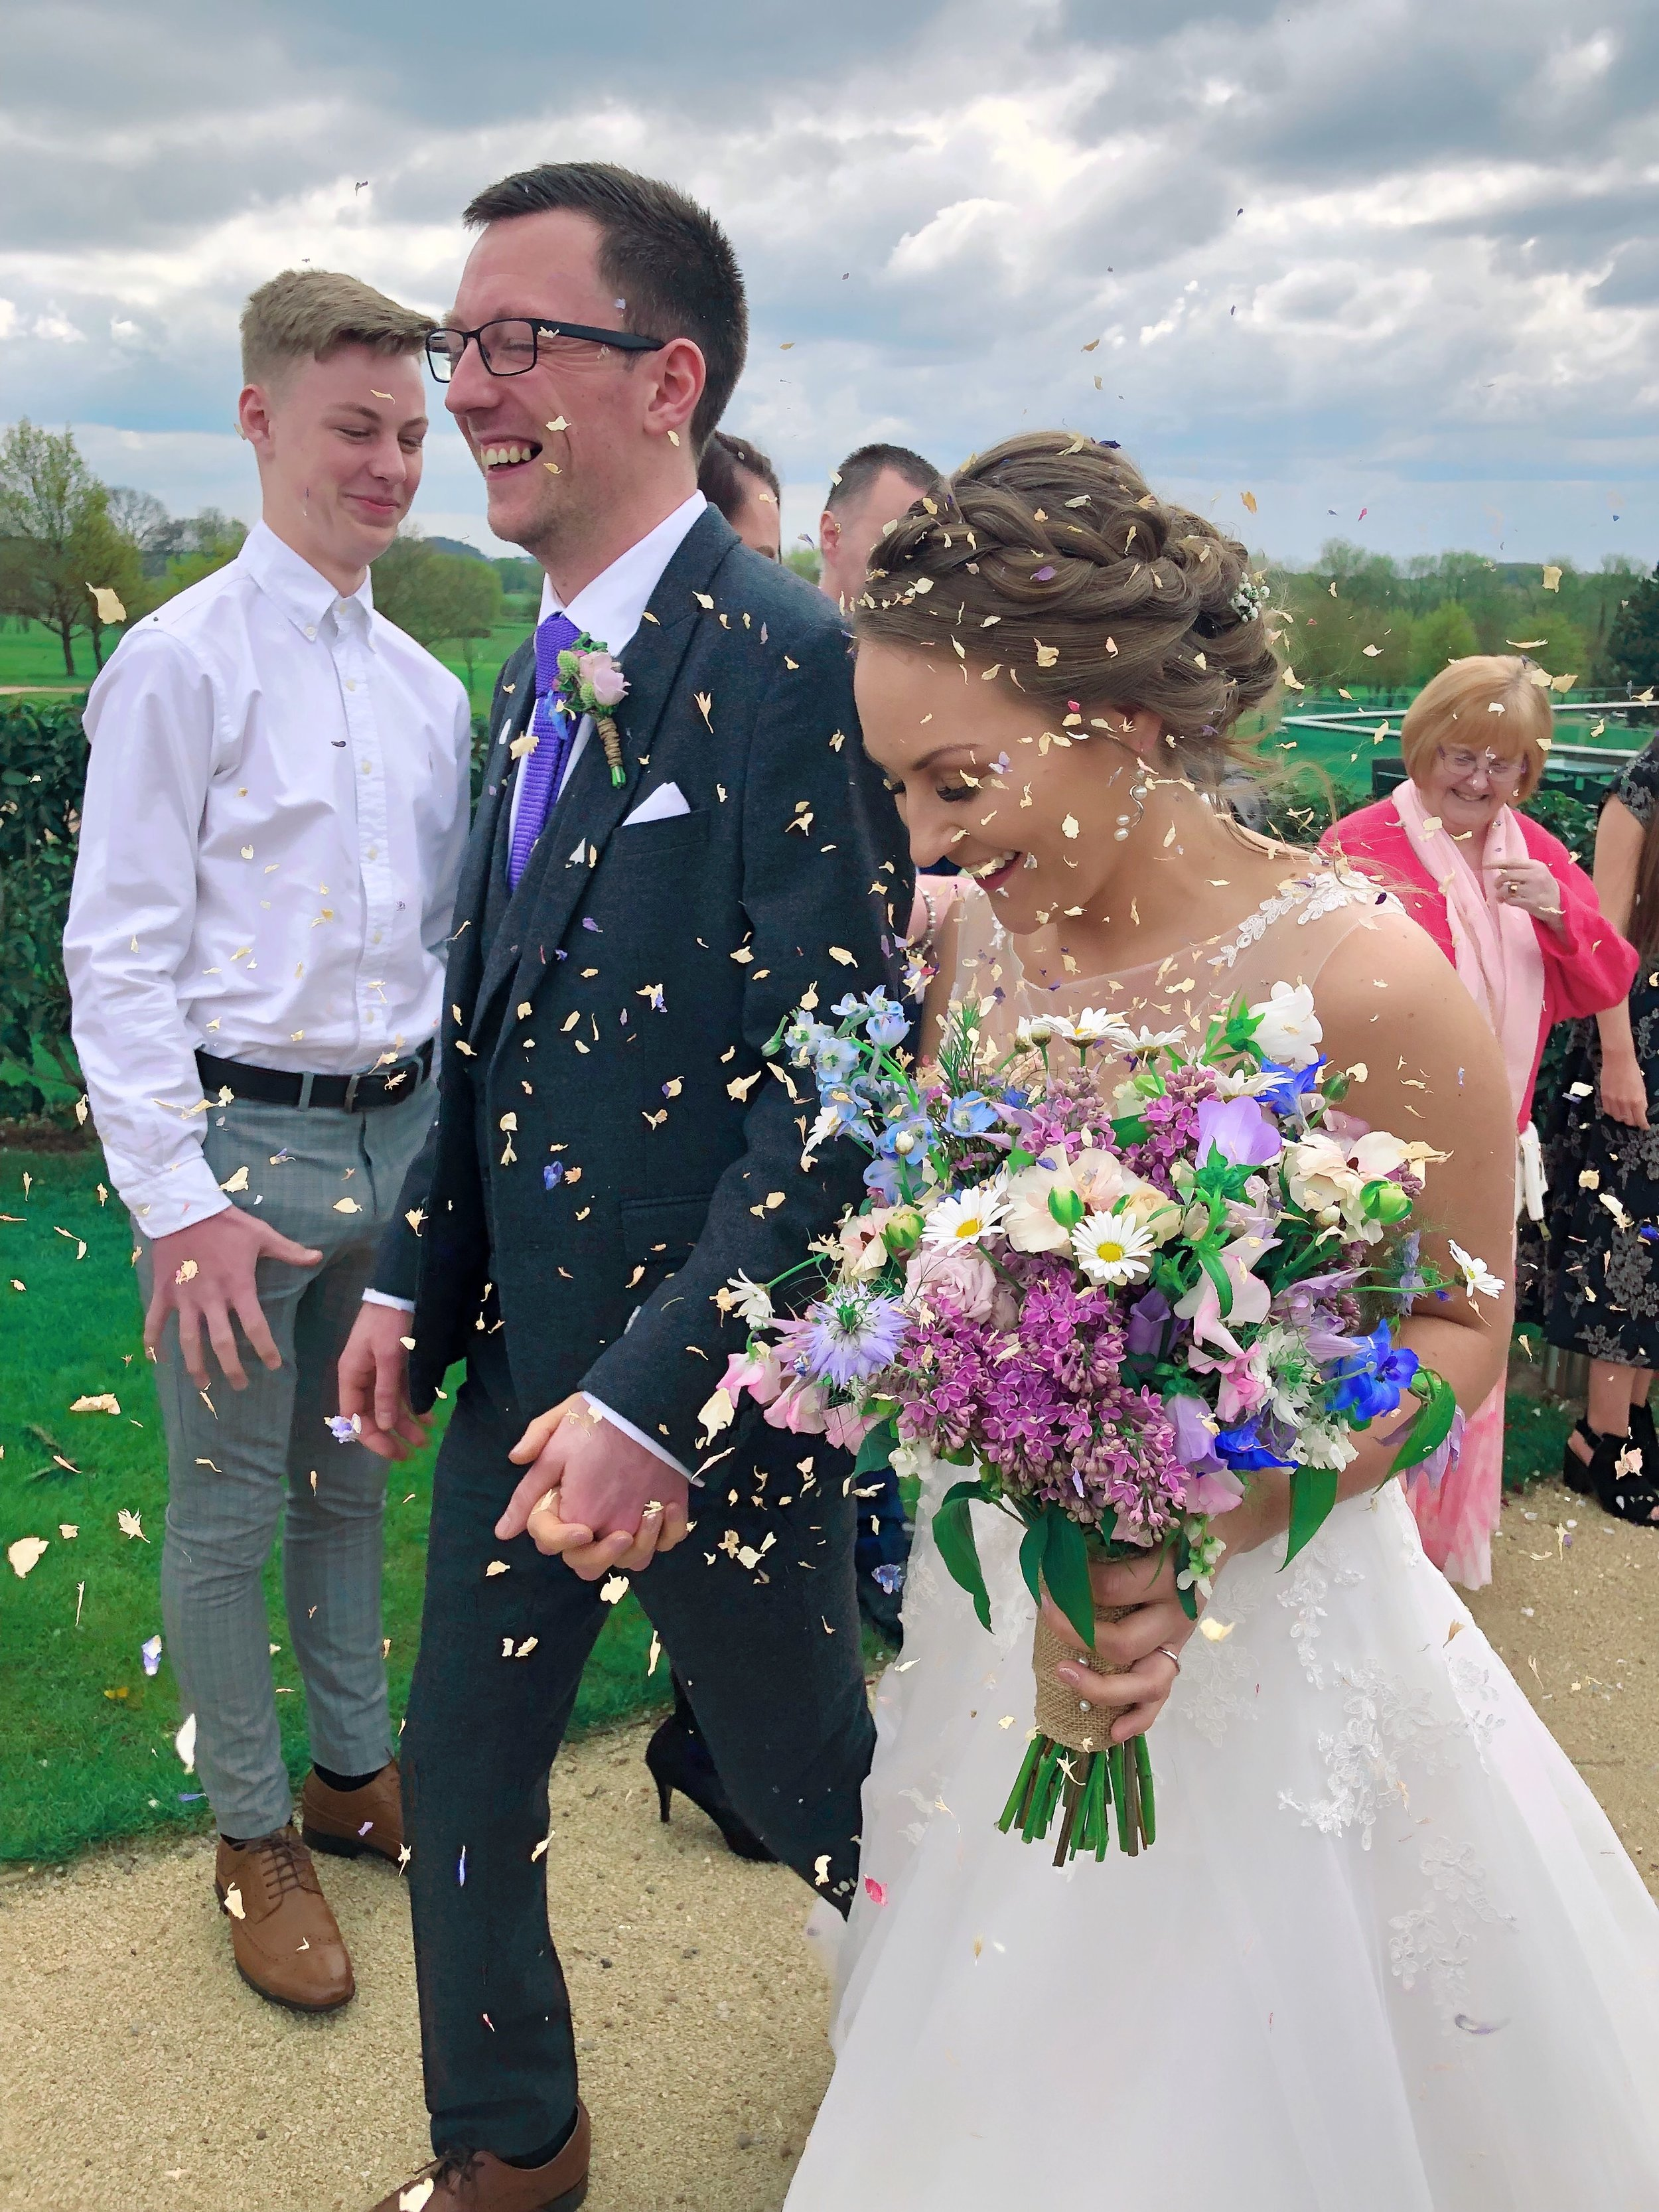 Keeley and Josh - April 2019Philipa recently did our flowers for our wedding, they were absolutely perfect!! So much more than I could ever have imagined. She took all our ideas and made them reality. She was so thoughtful and put in so much hard work!! We can't thank you enough